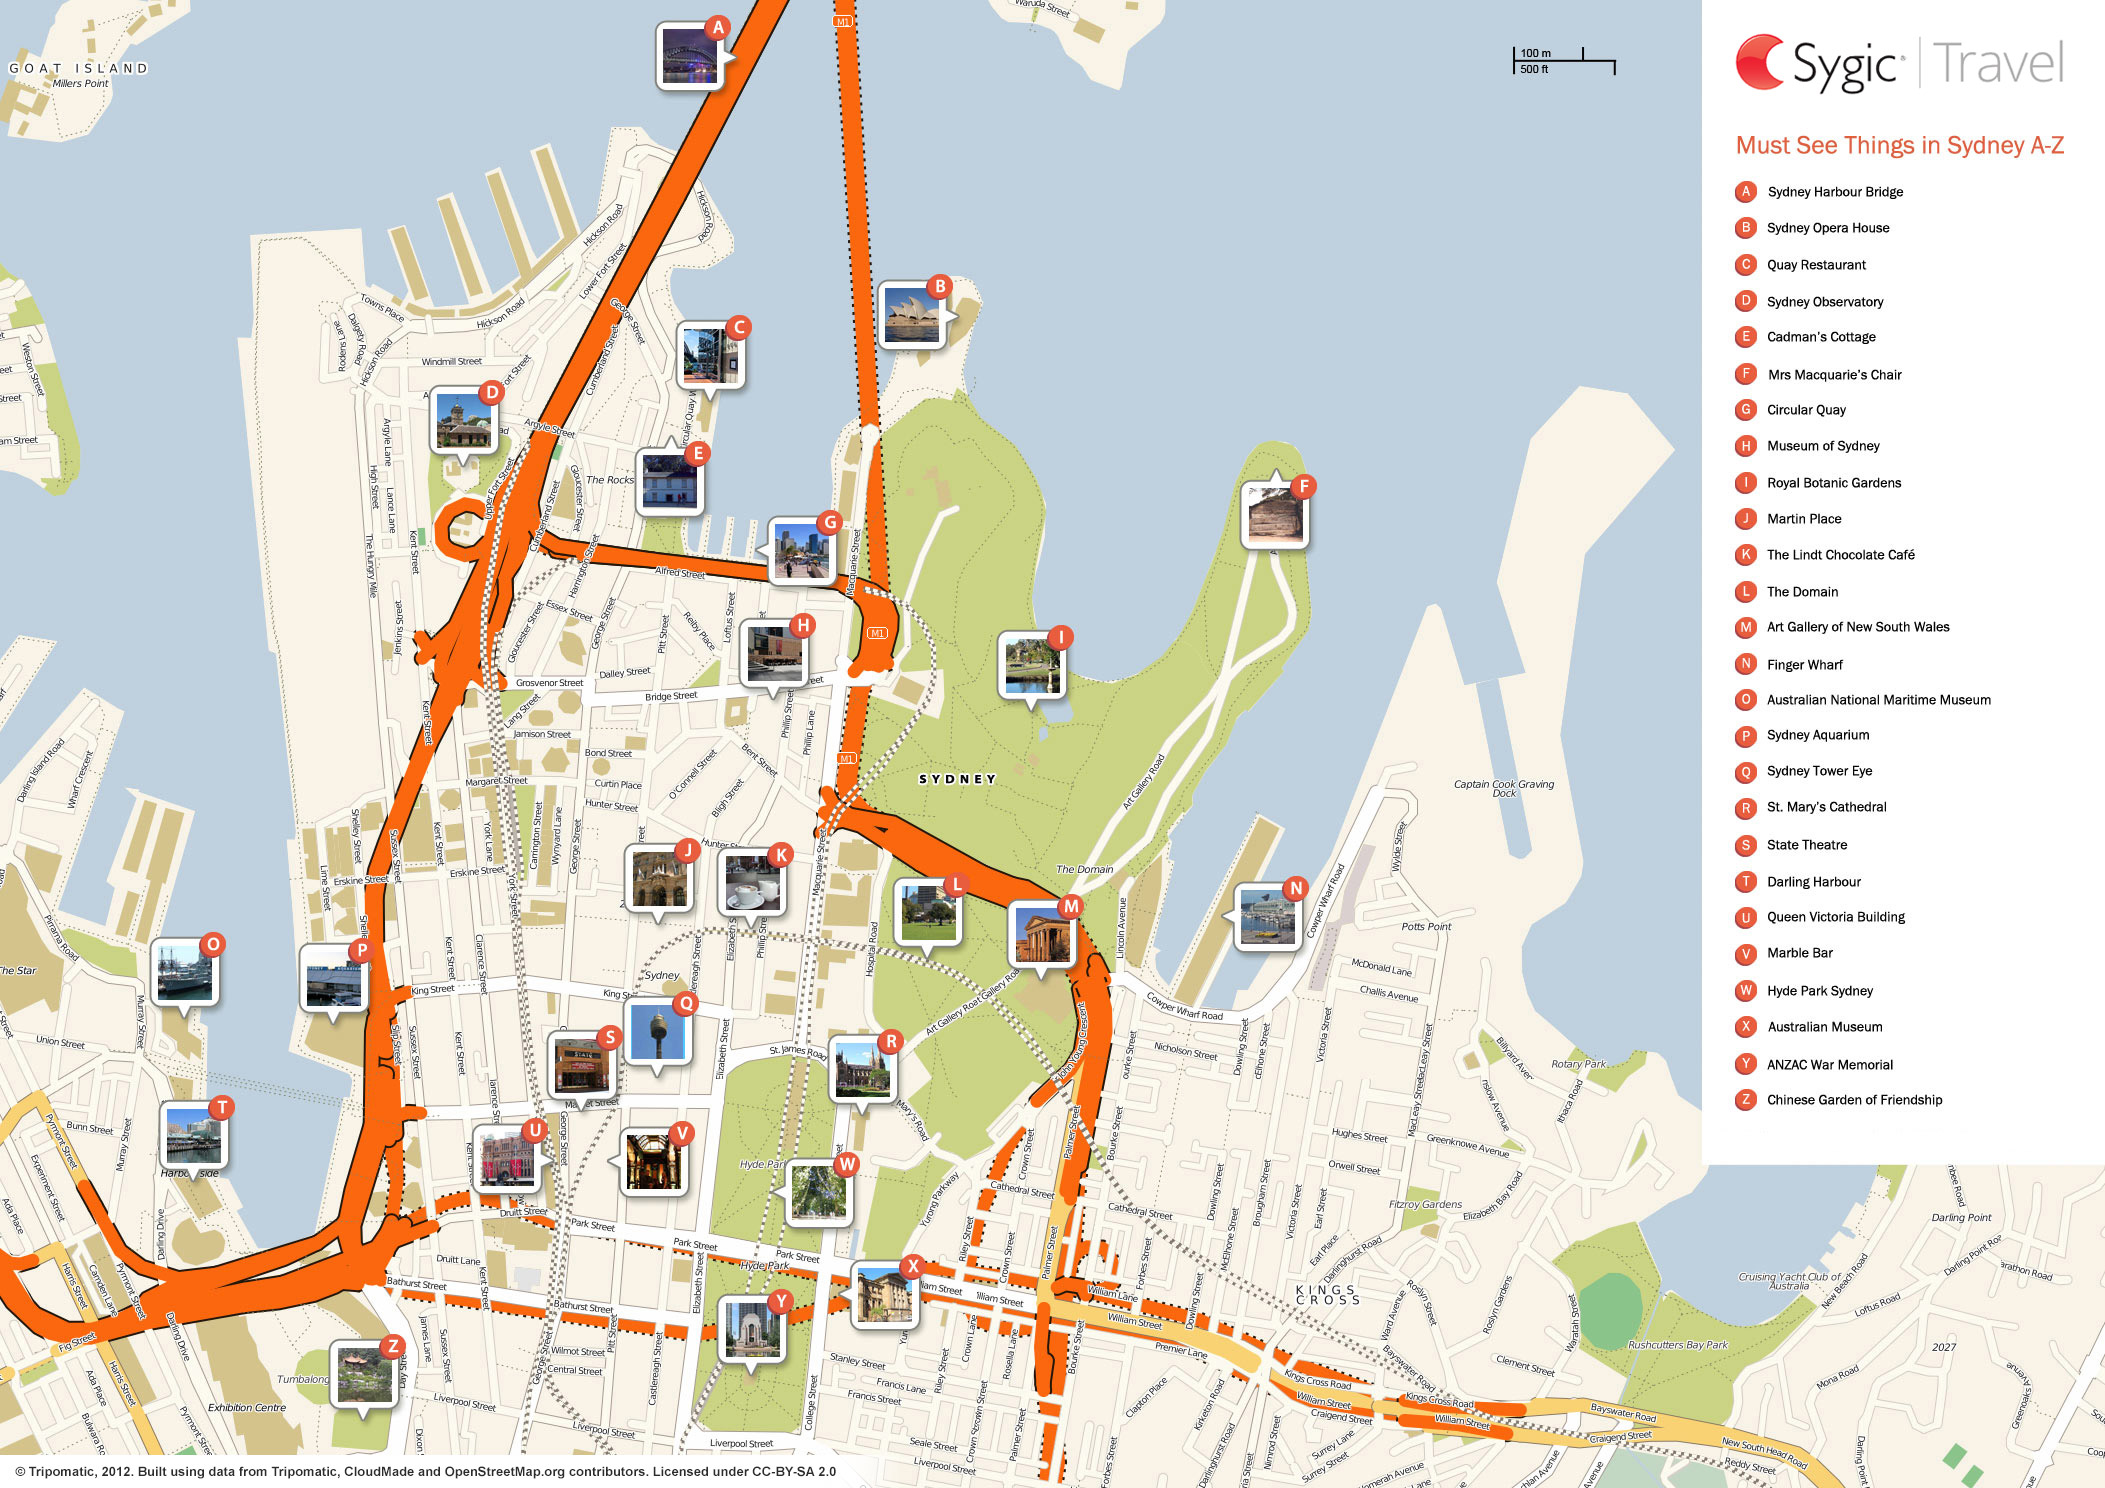 Map Of Australia With Landmarks Sydney Tourist Attractions Map – Australia Tourist Attractions Map